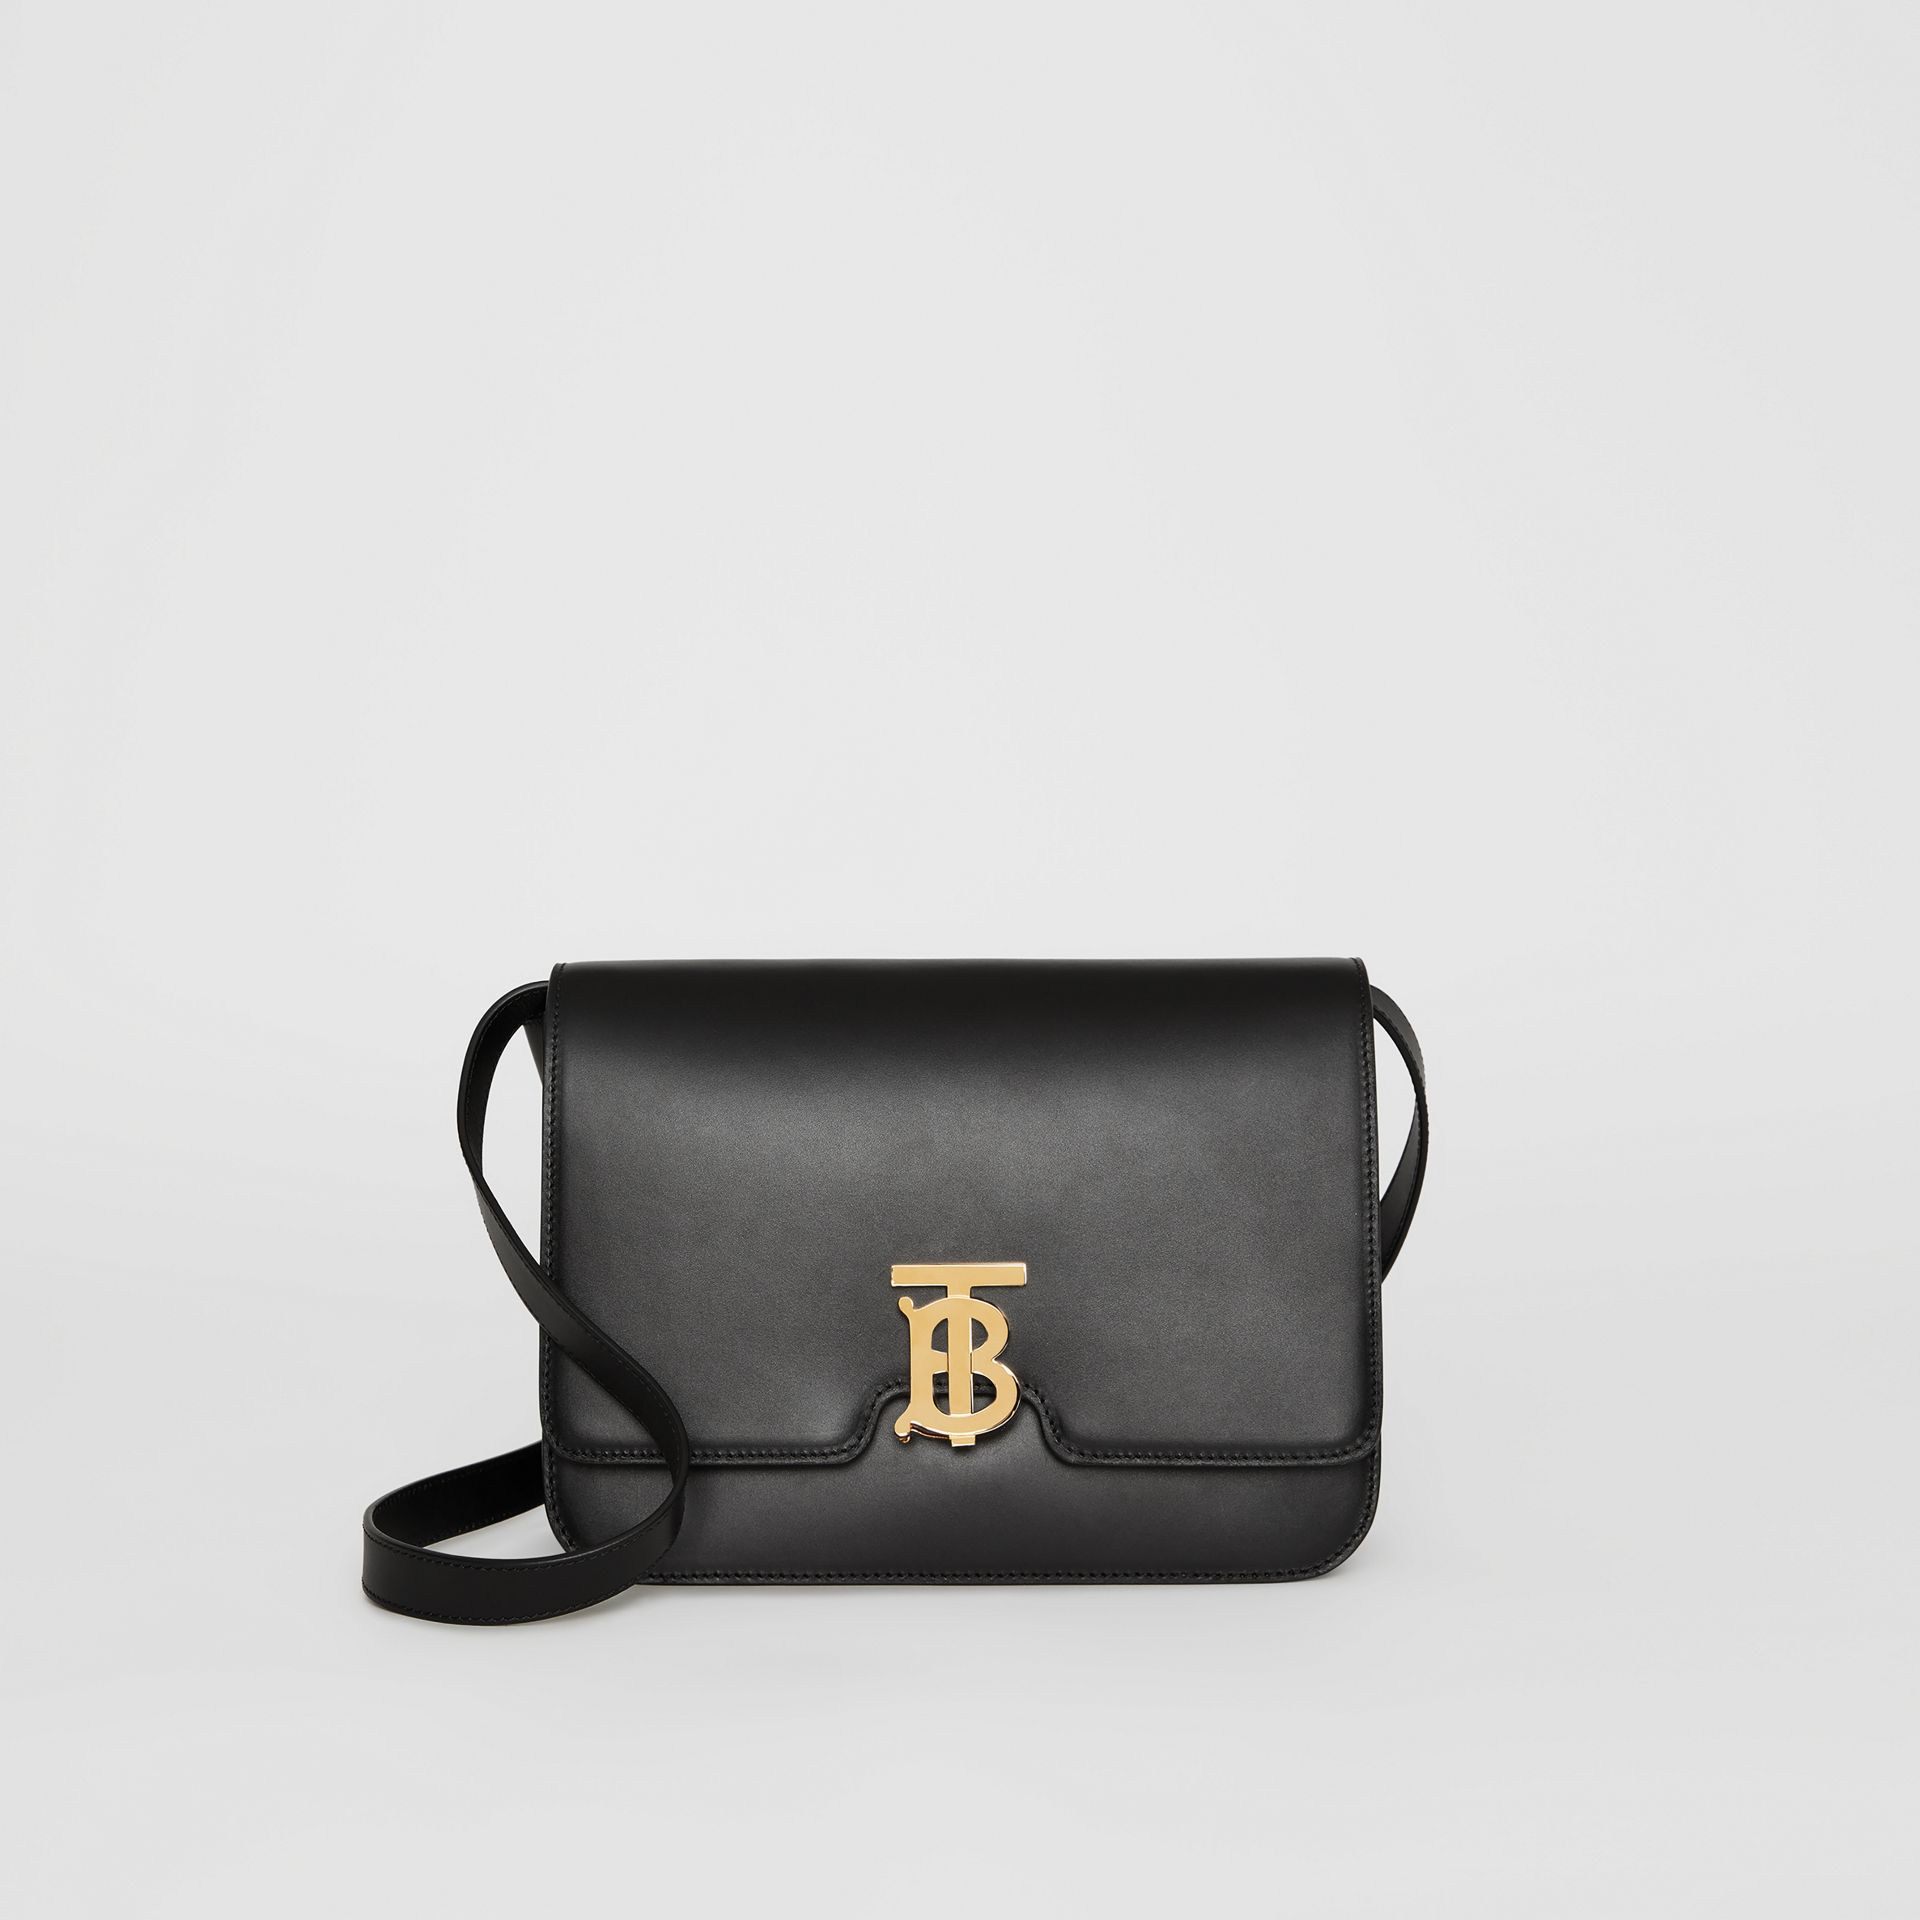 Medium Leather TB Bag in Black - Women | Burberry Australia - gallery image 0